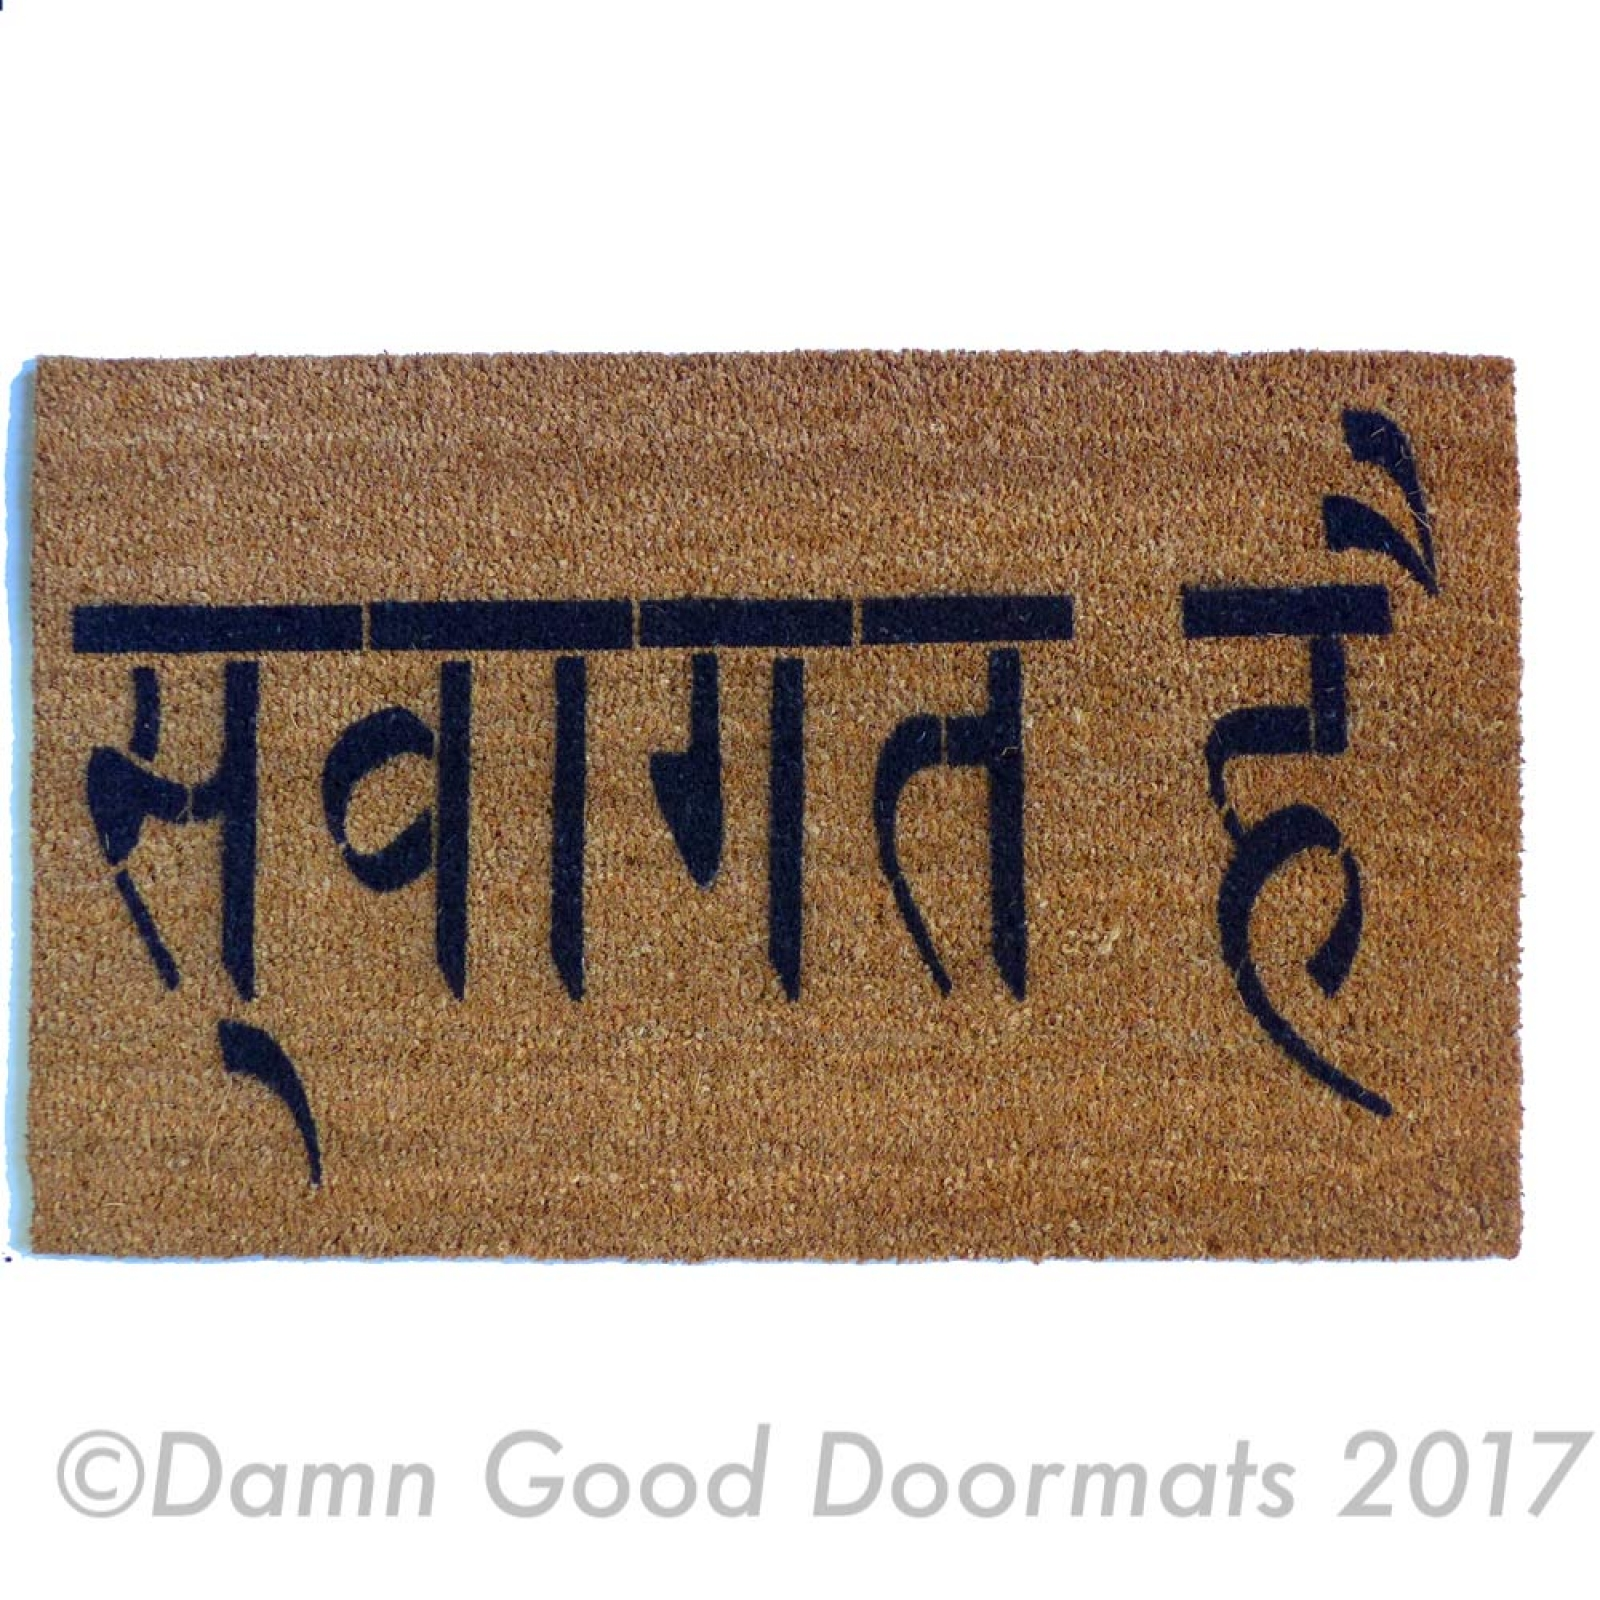 Hindu Welcome Yoga Mat Doormat Damn Good Doormats